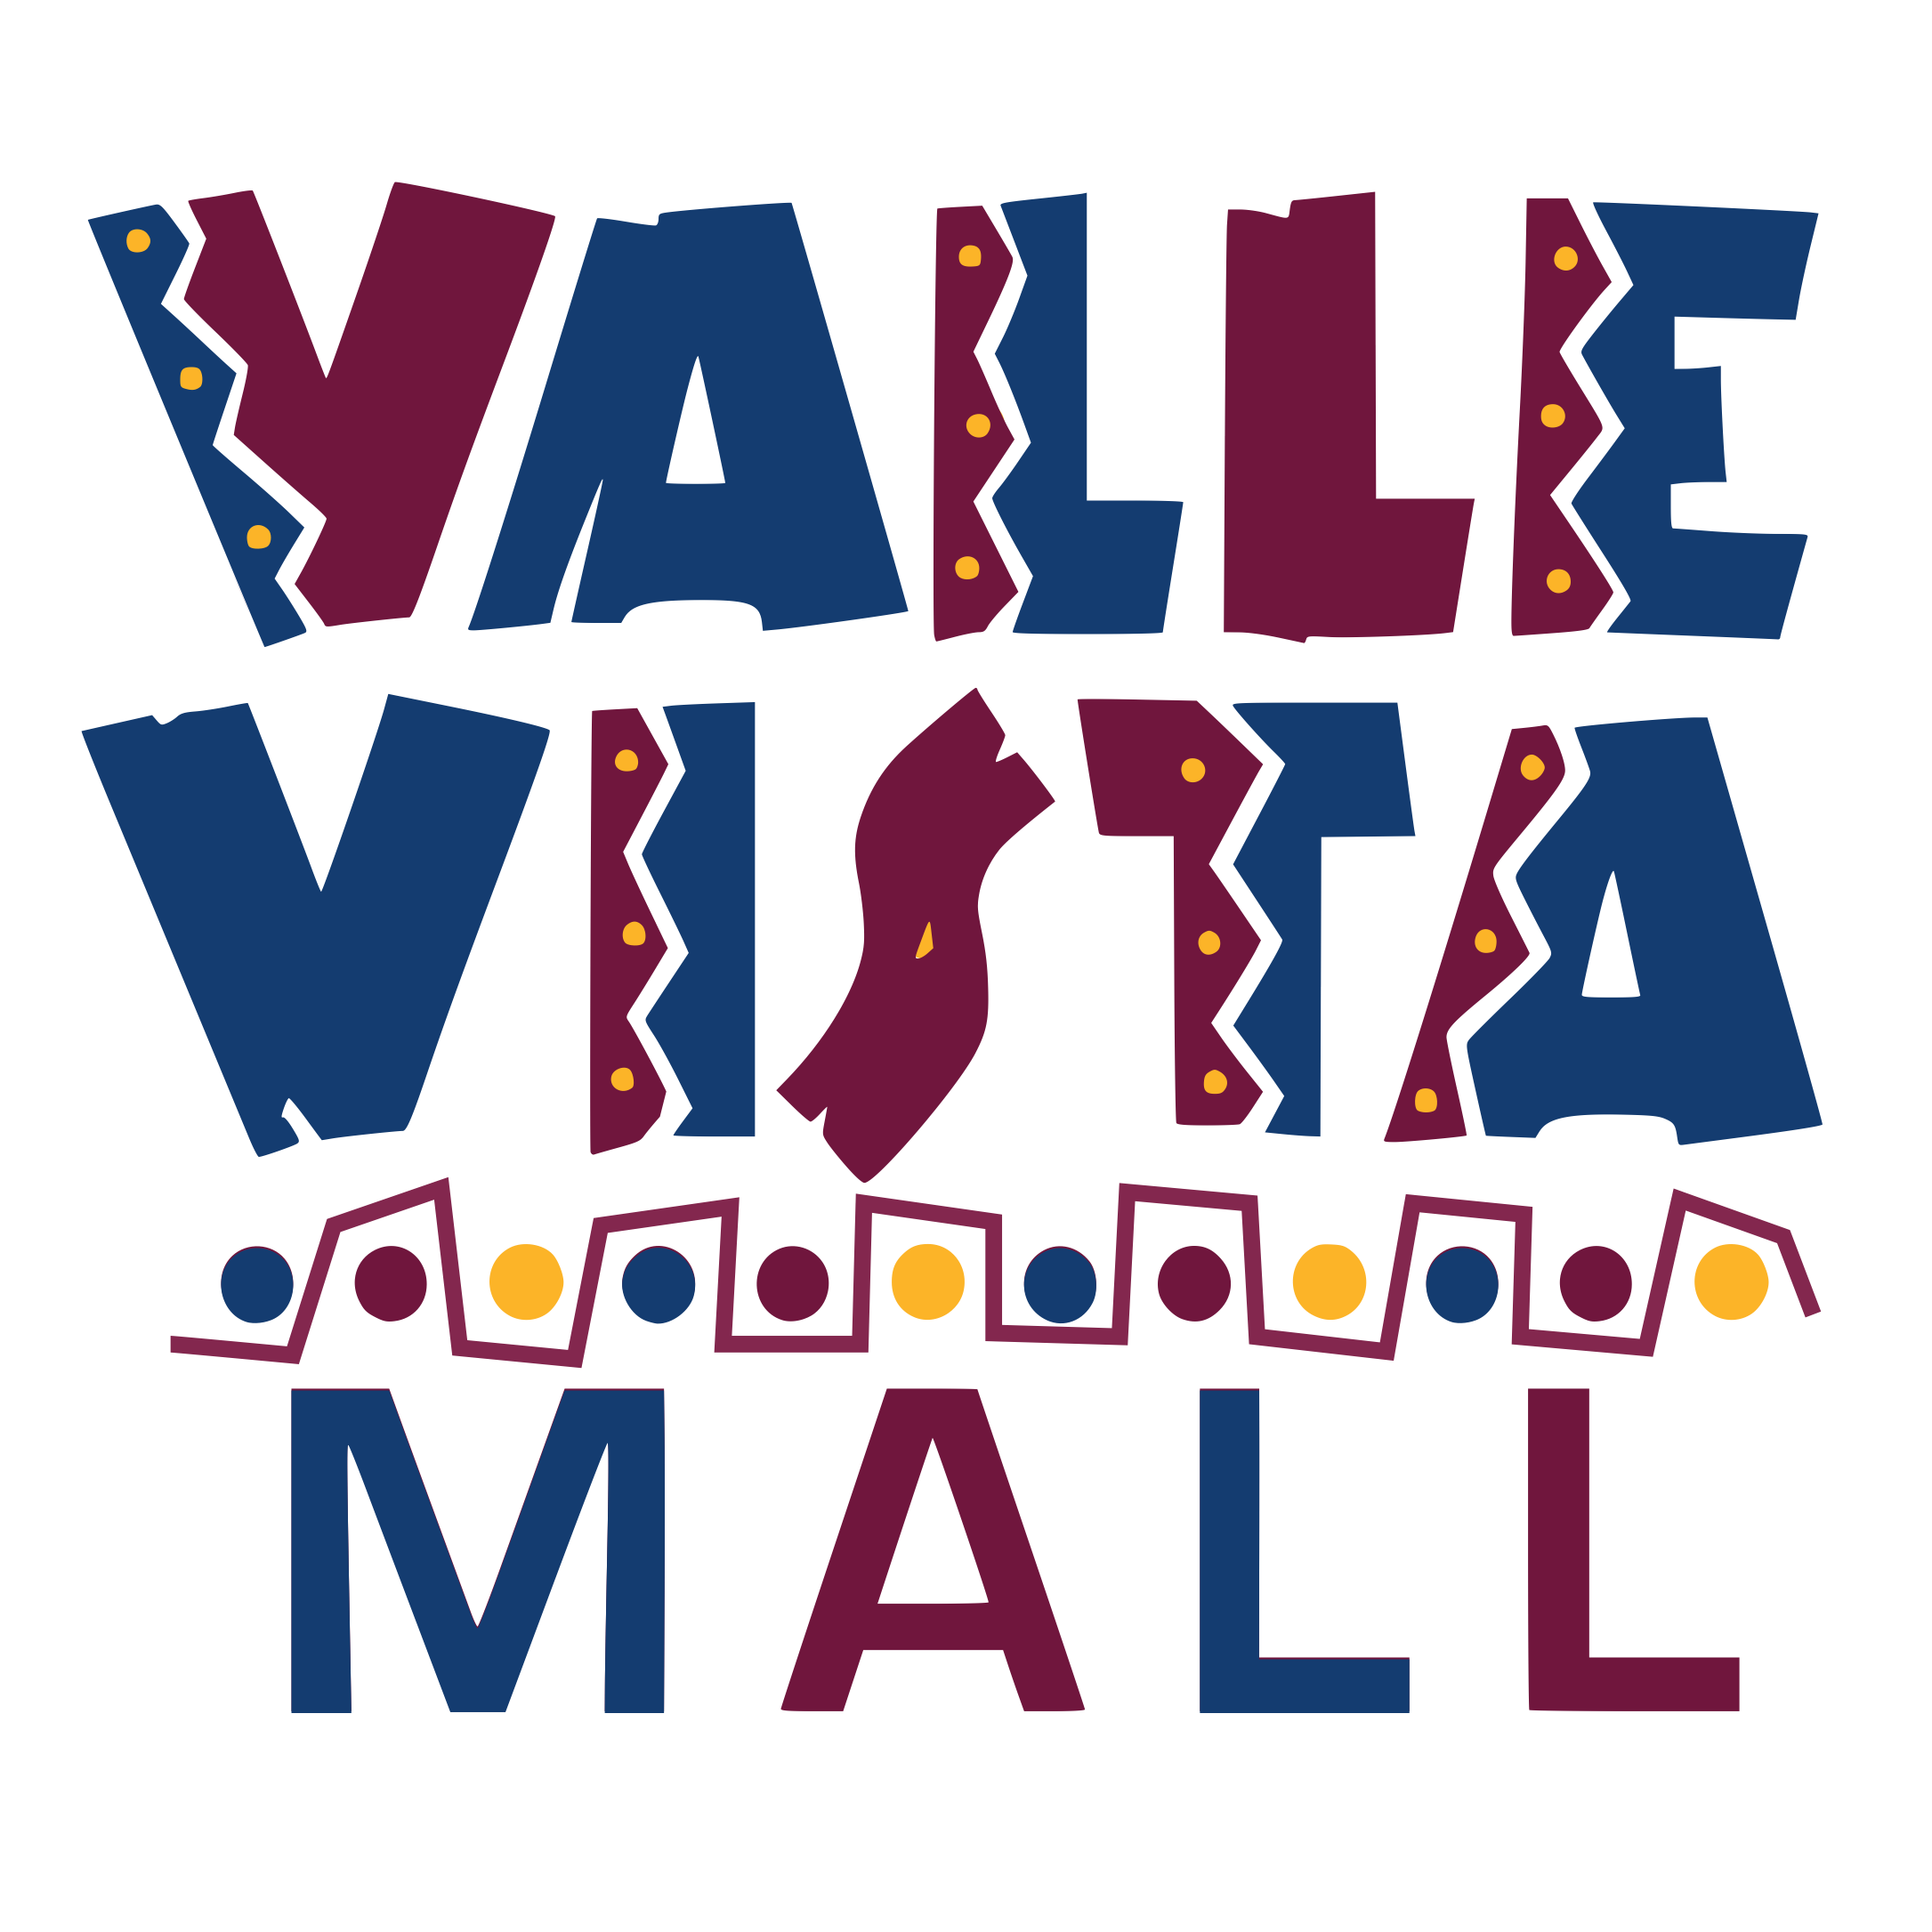 Blue and maroon Valle Vista Mall logo